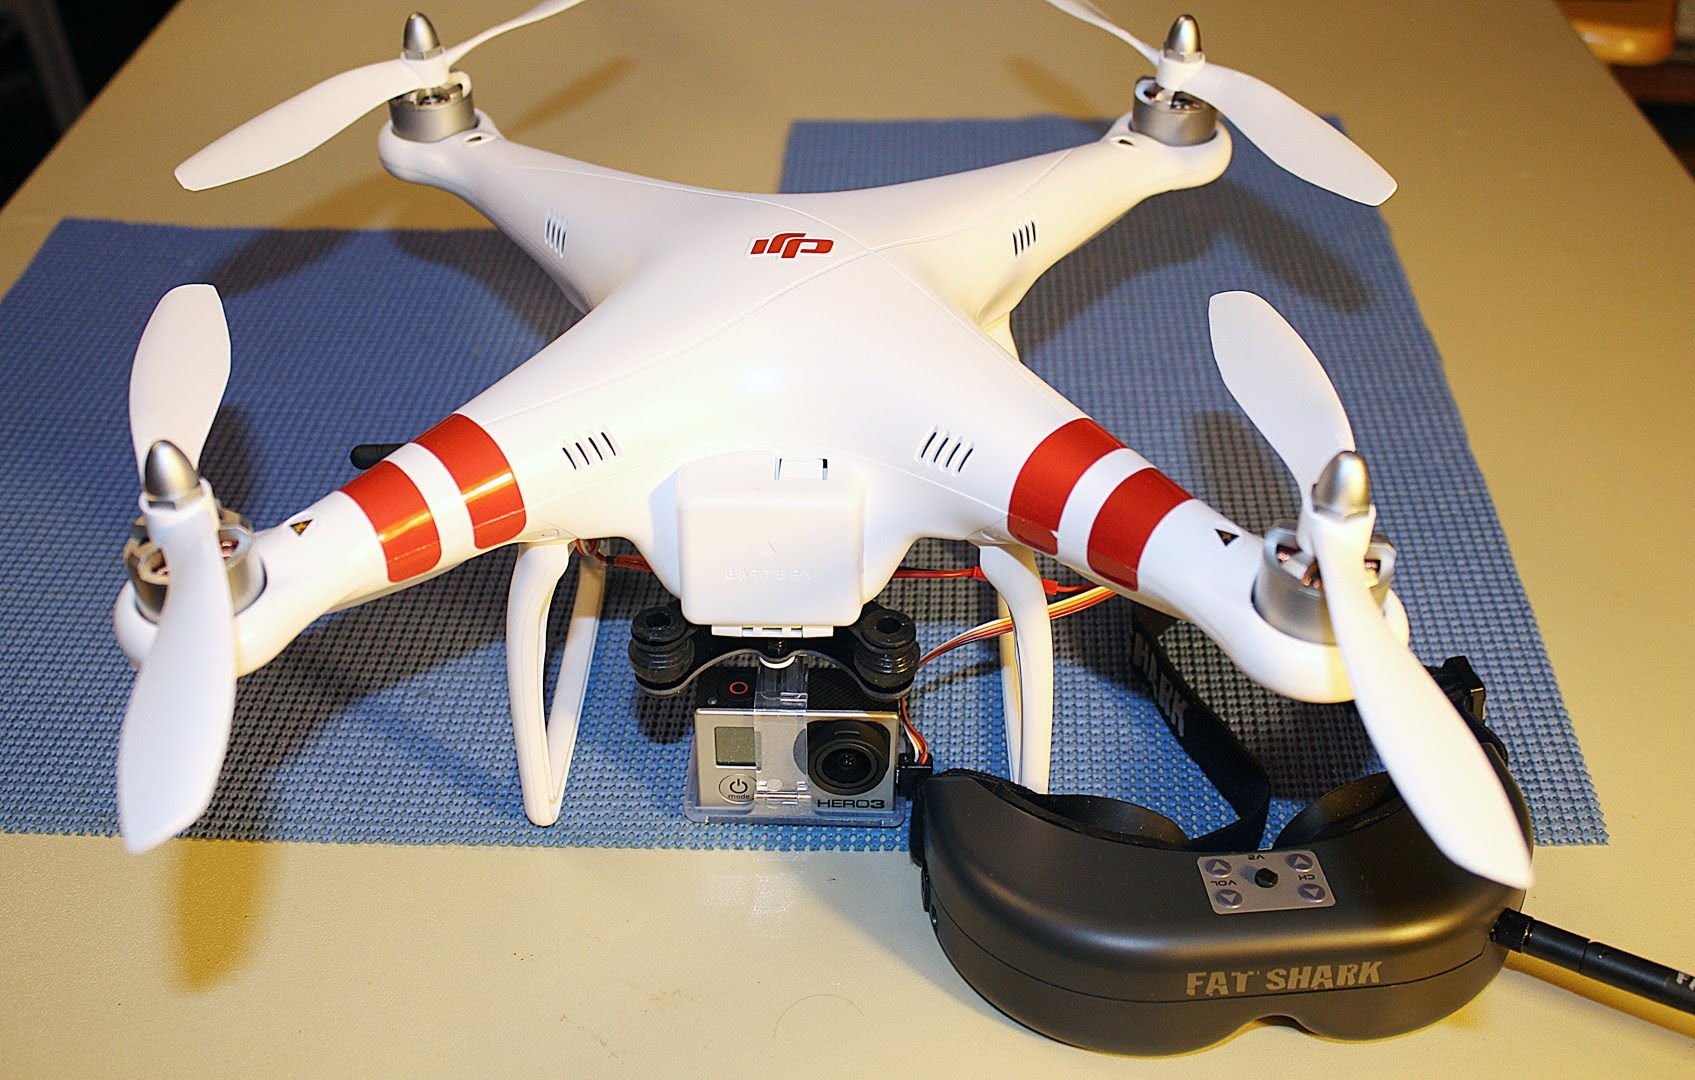 Drone Hobbyist finds flaws in FAA report